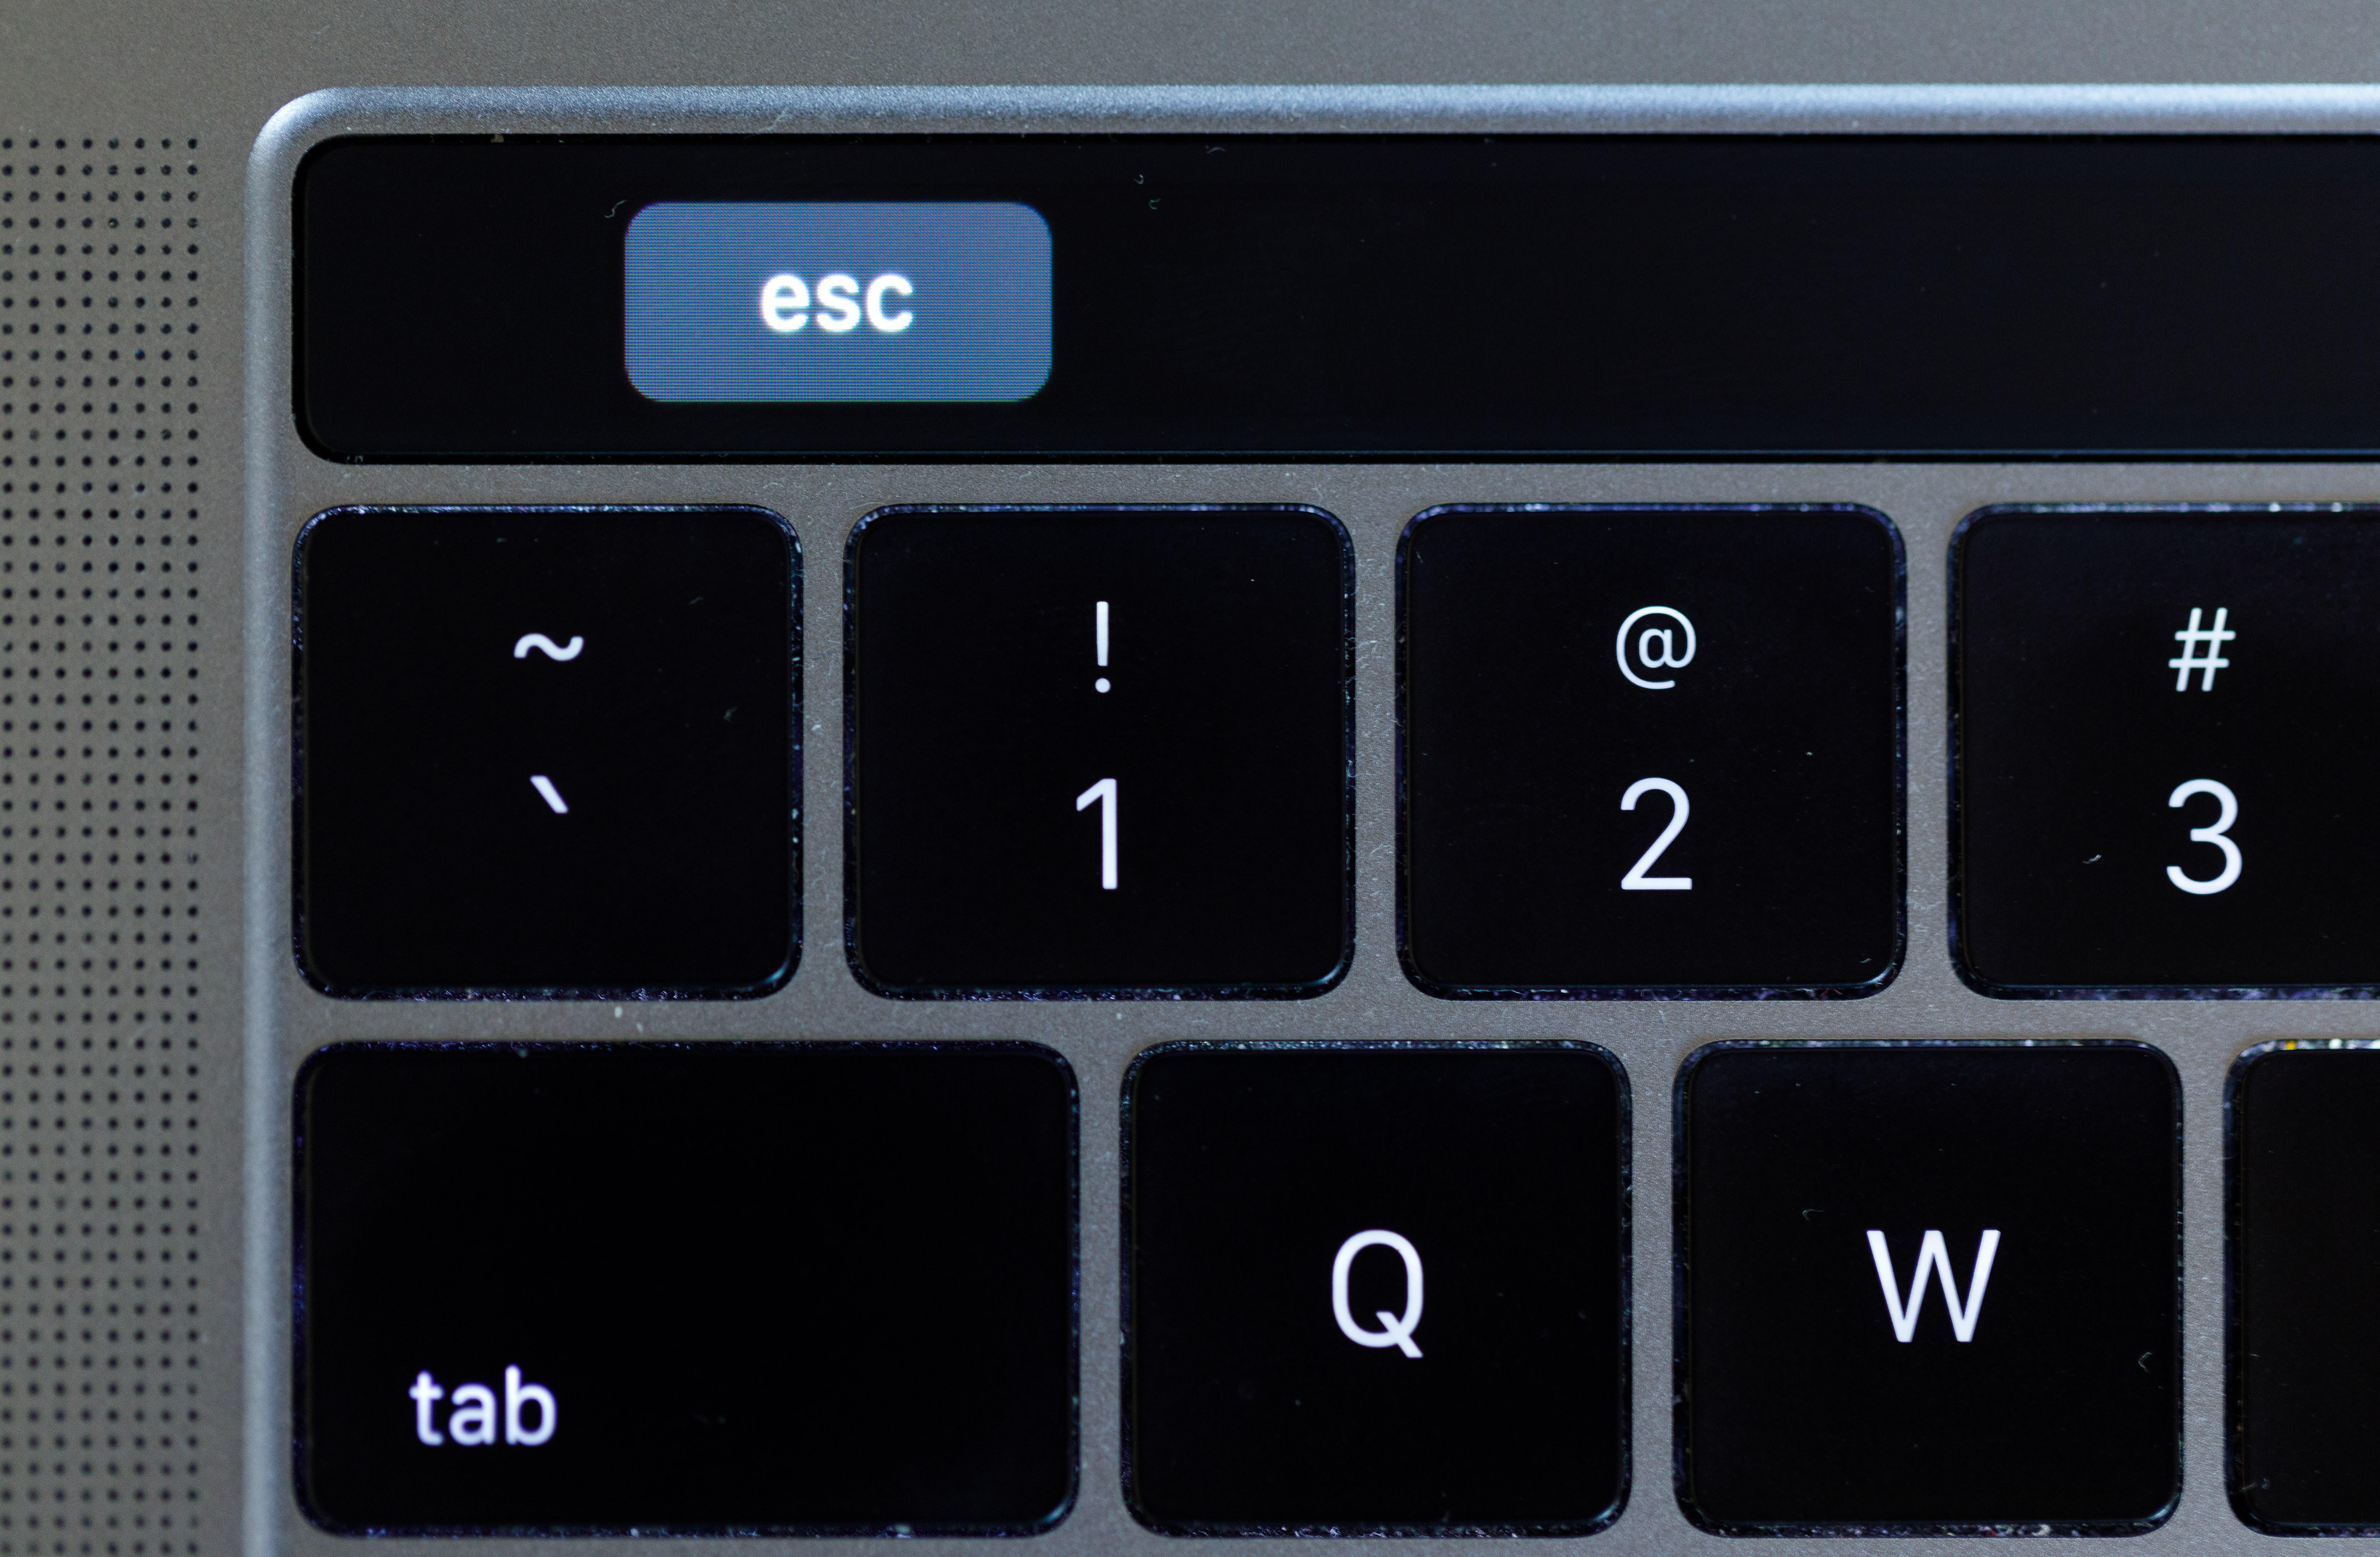 , Apple MacBook butterfly keyboard class action lawsuit clears another hurdle – Source CNET Tech, iBSC Technologies - learning management services, LMS, Wordpress, CMS, Moodle, IT, Email, Web Hosting, Cloud Server,Cloud Computing